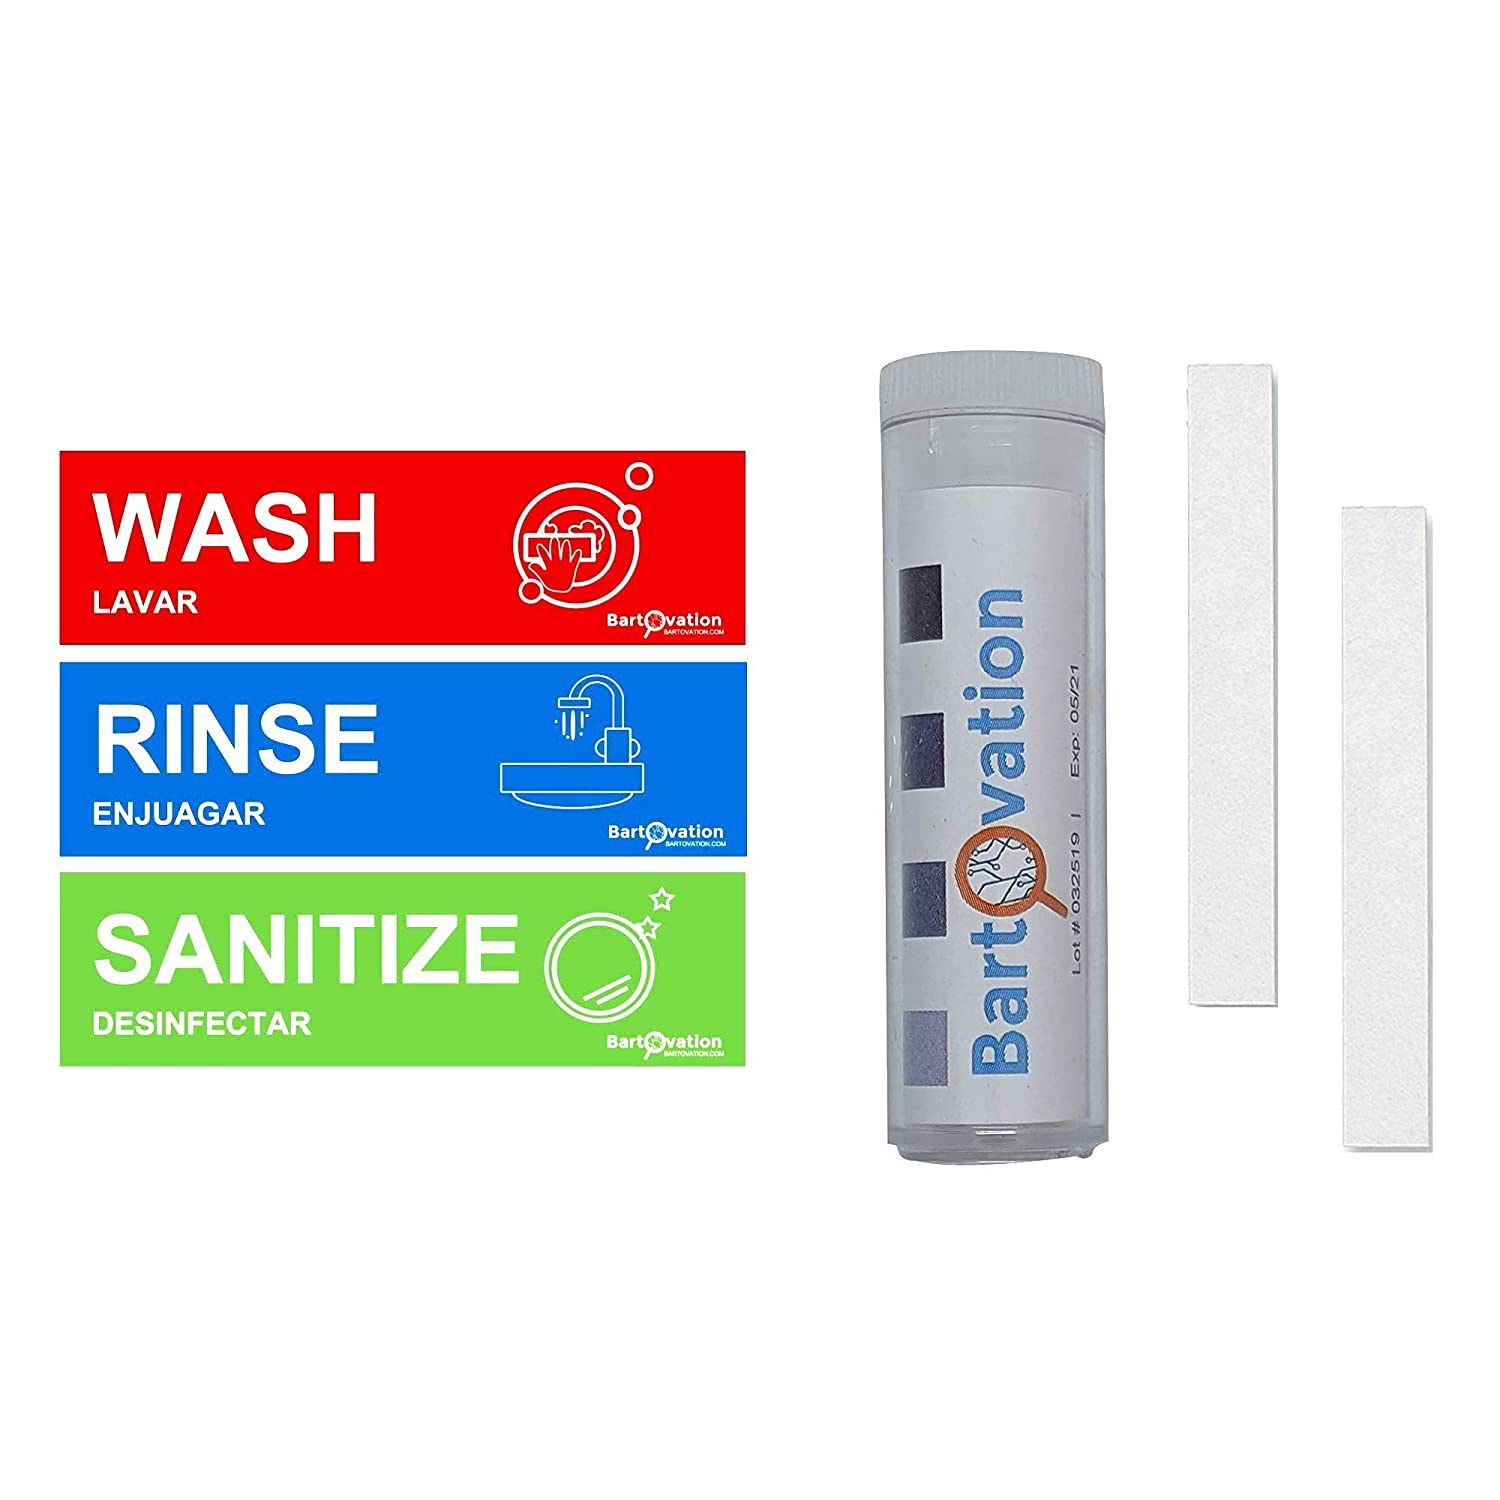 Chlorine Topics on TV Testing Strips with Rinse Heavy Viny Sanitize 2021 autumn and winter new Wash Duty